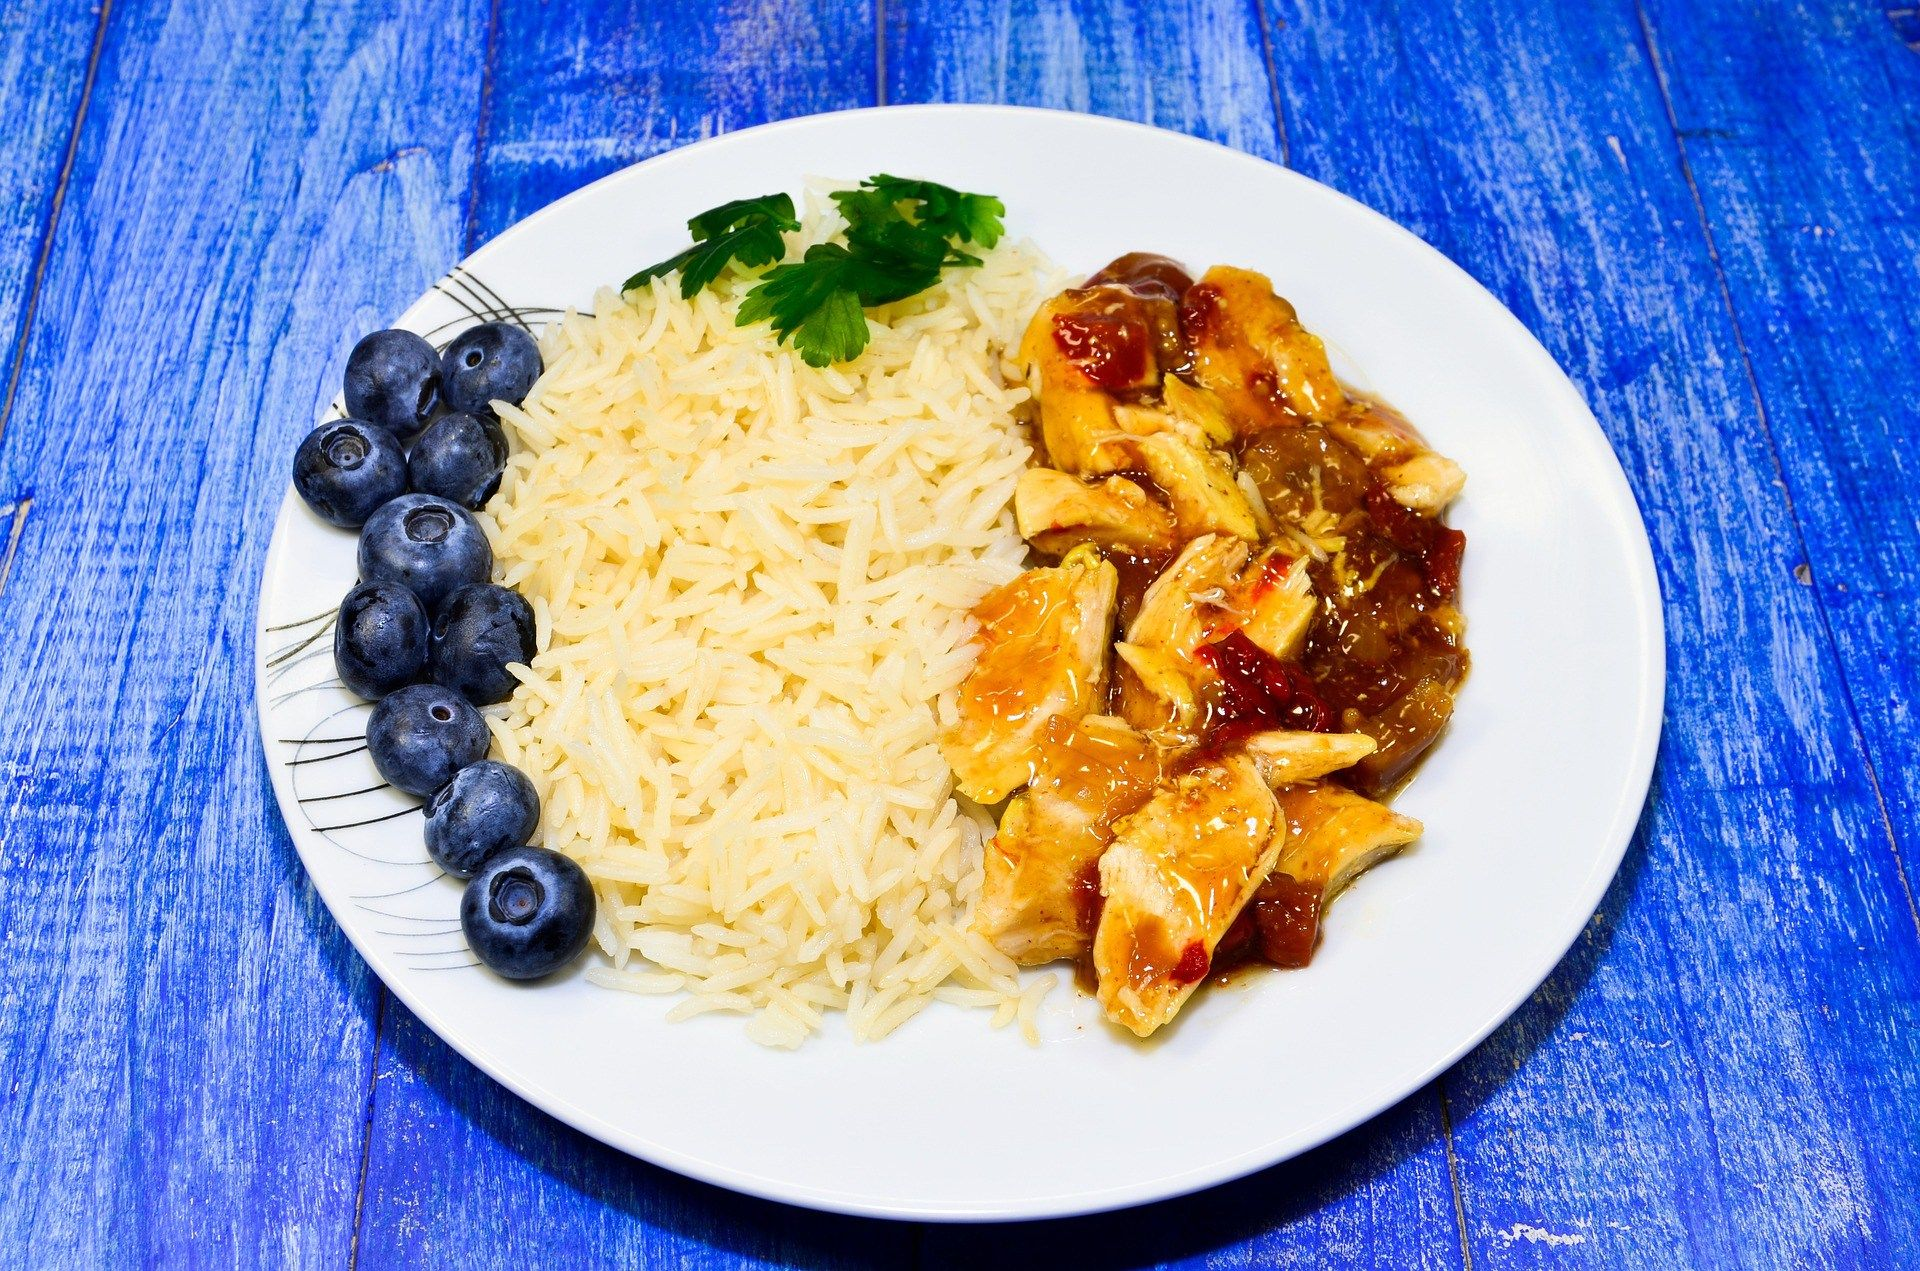 Wt reduction diet dinner ideas healthy dinner ideas and healthy 3 easy and healthy dinner ideas today i decided to show you guys 3 easy and forumfinder Gallery